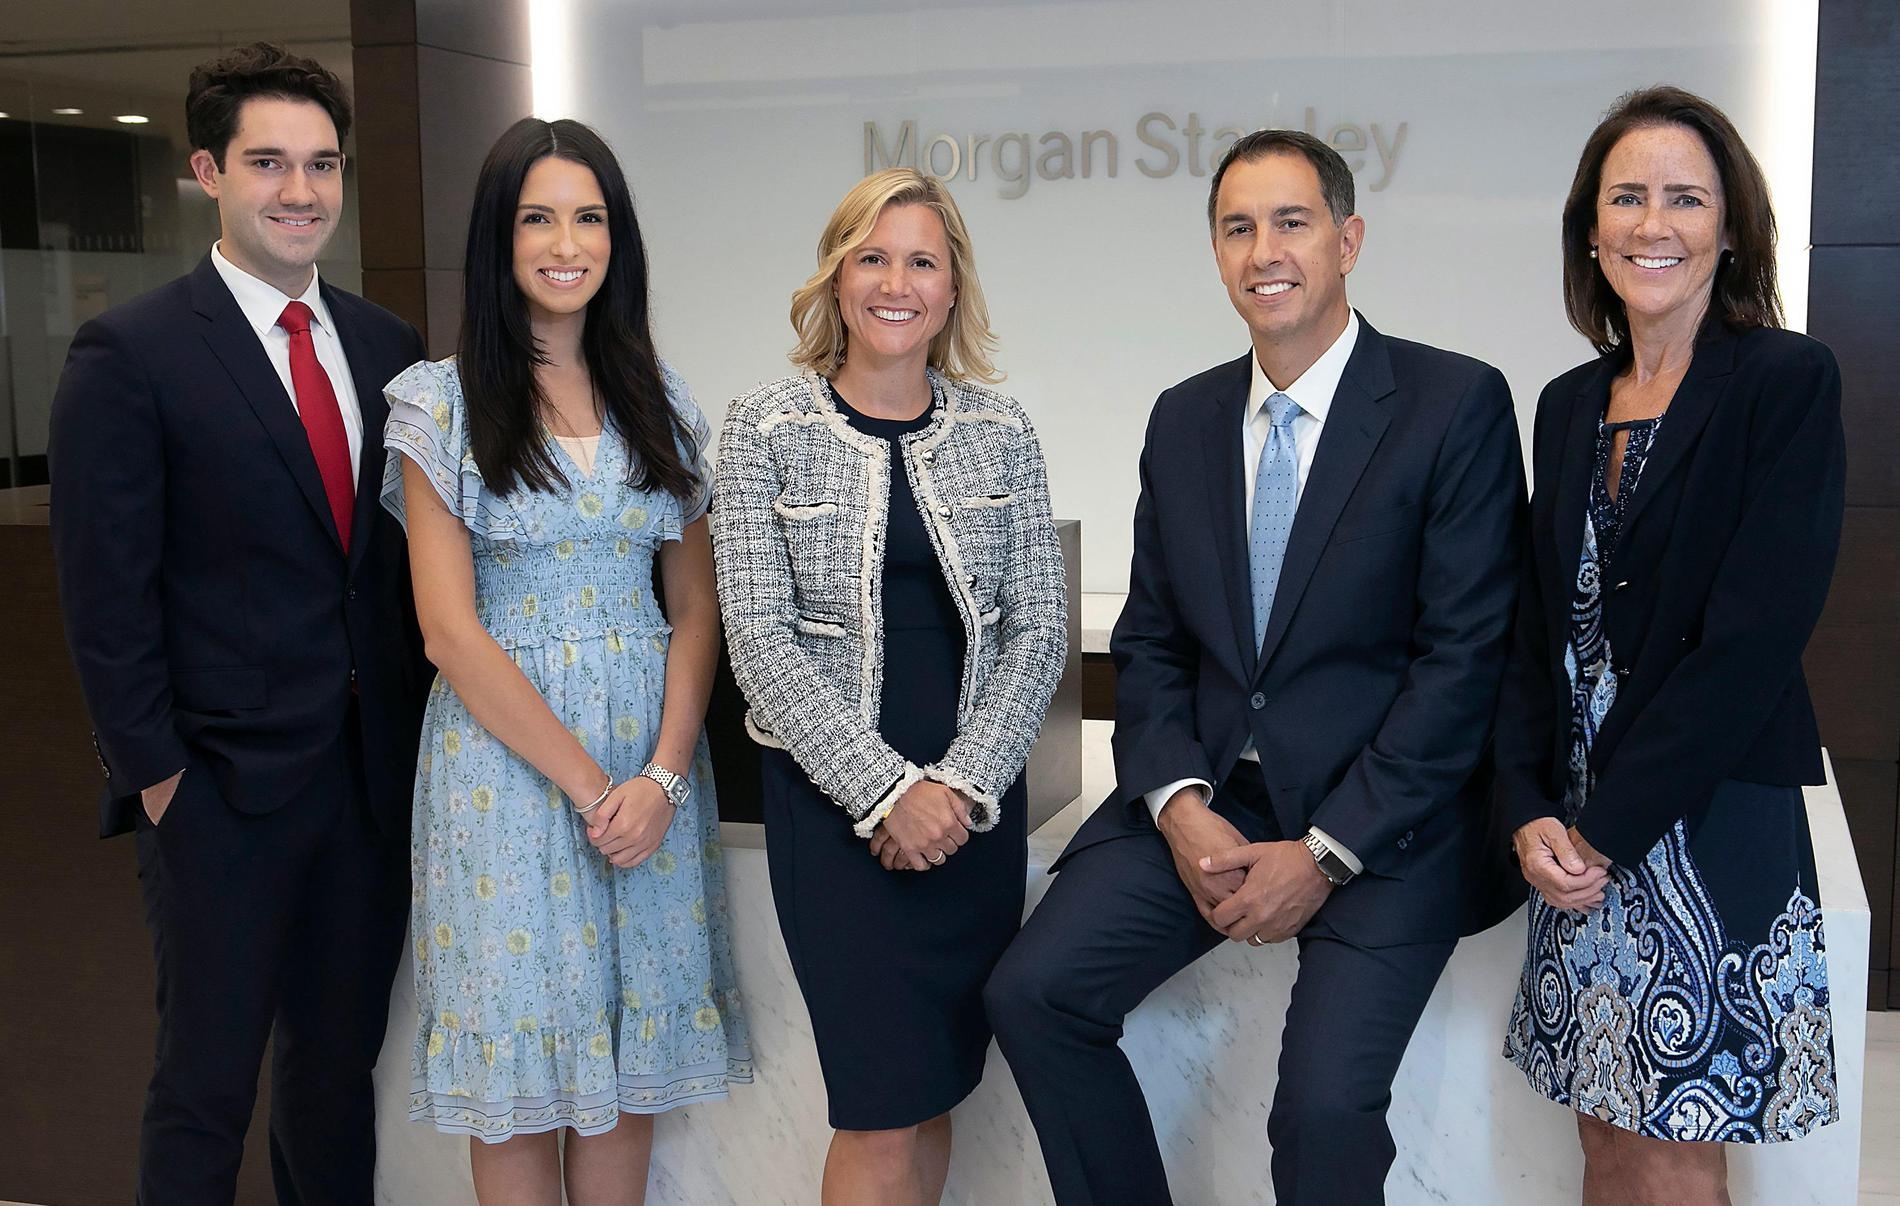 The BTW Group | New York, NY | Morgan Stanley Wealth Management